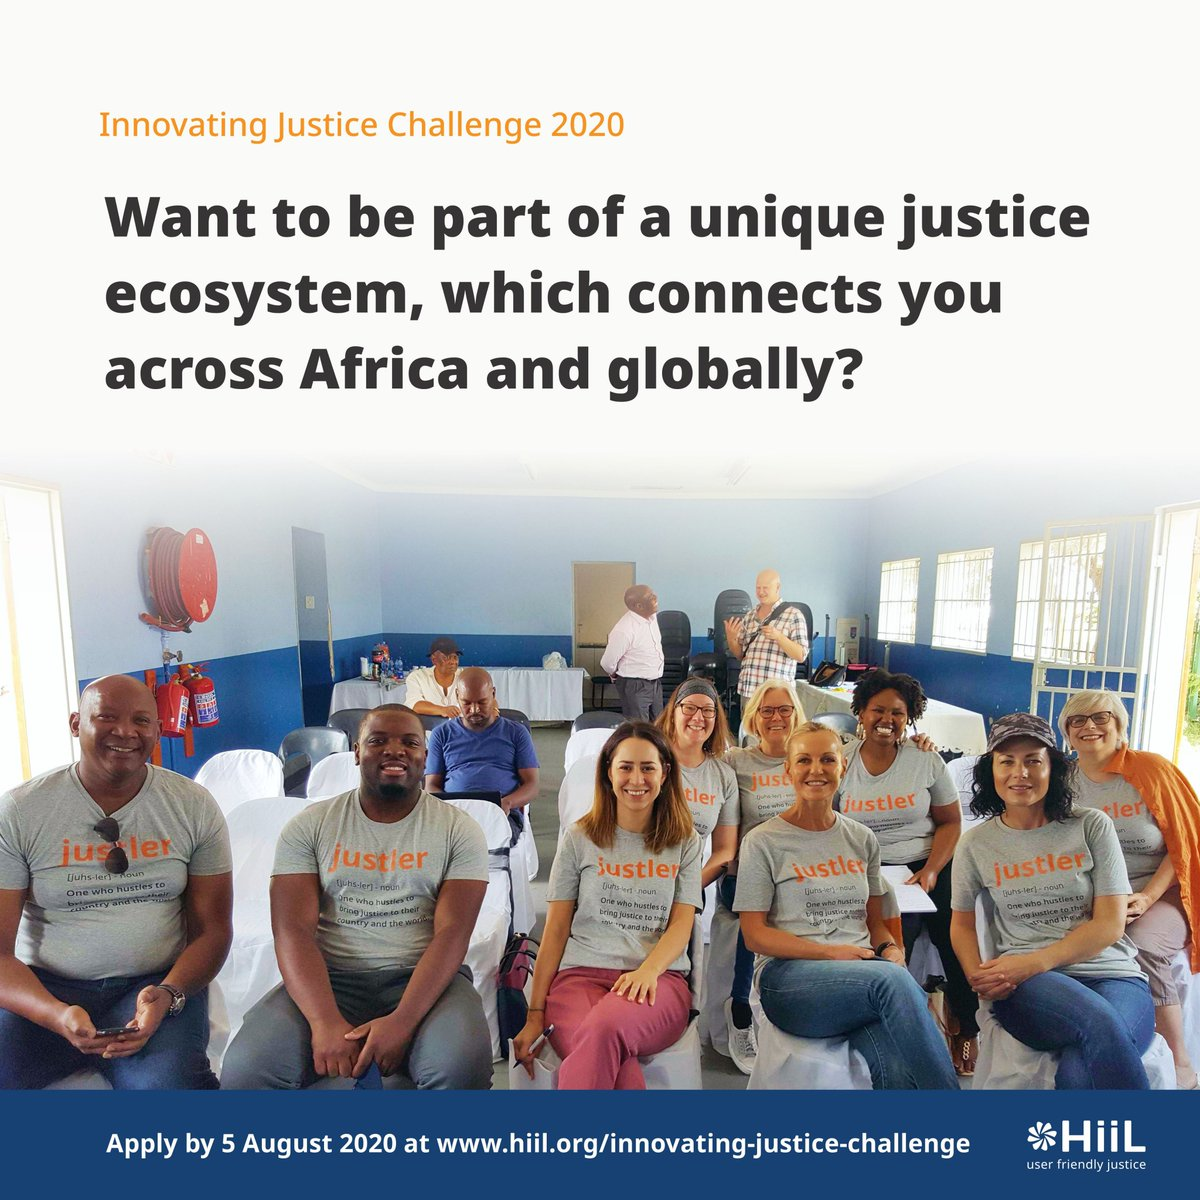 Its a new week!  Another opportunity to apply for our Innovating Justice Challenge here: https://t.co/3947YFZEgx  #JustInnovate20 #InnovatingJusticeChallenge2020 https://t.co/NLHMgVS3Mj